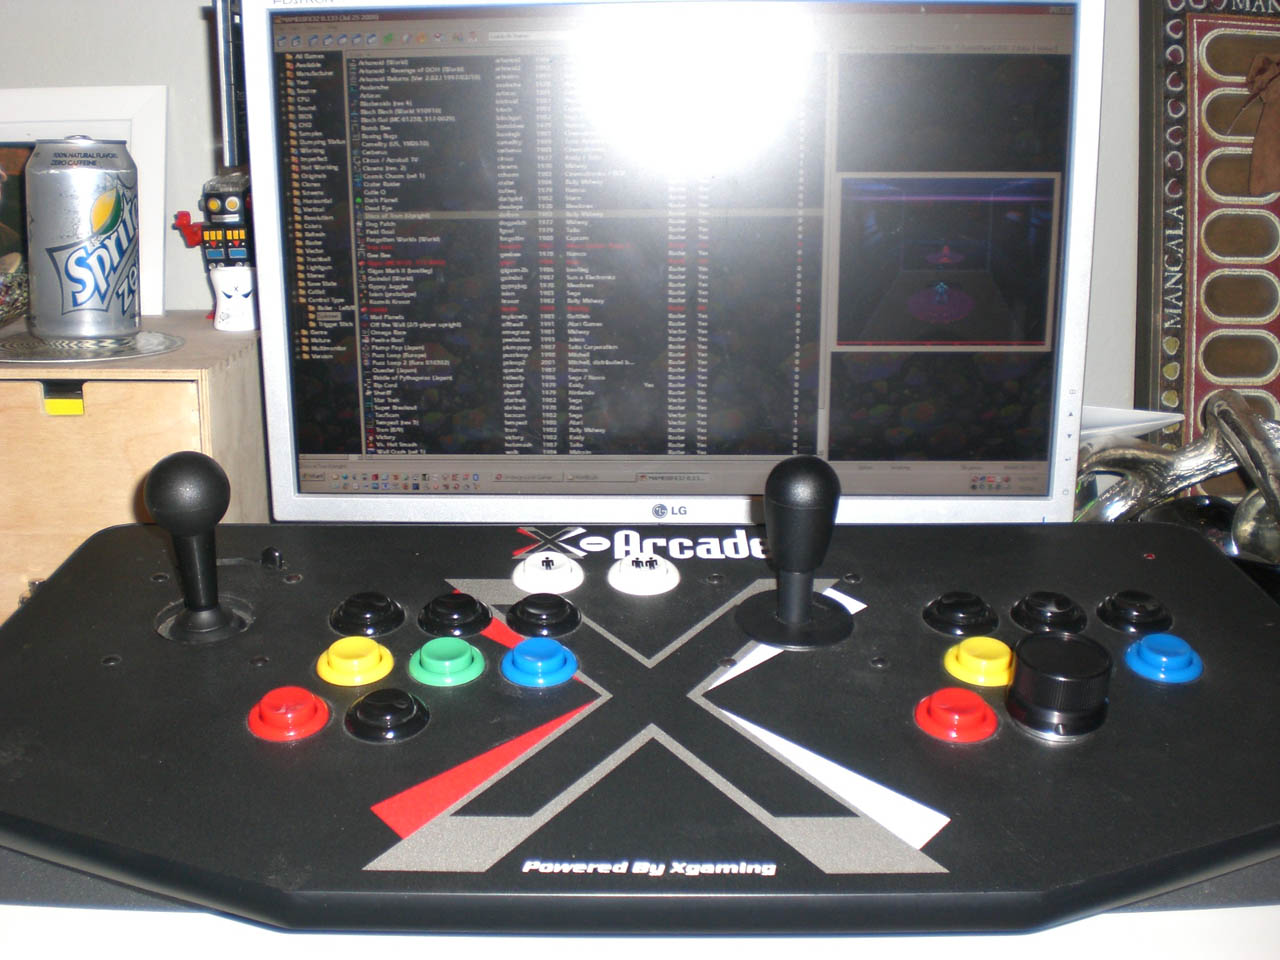 MAME: how to do with games that need special controls